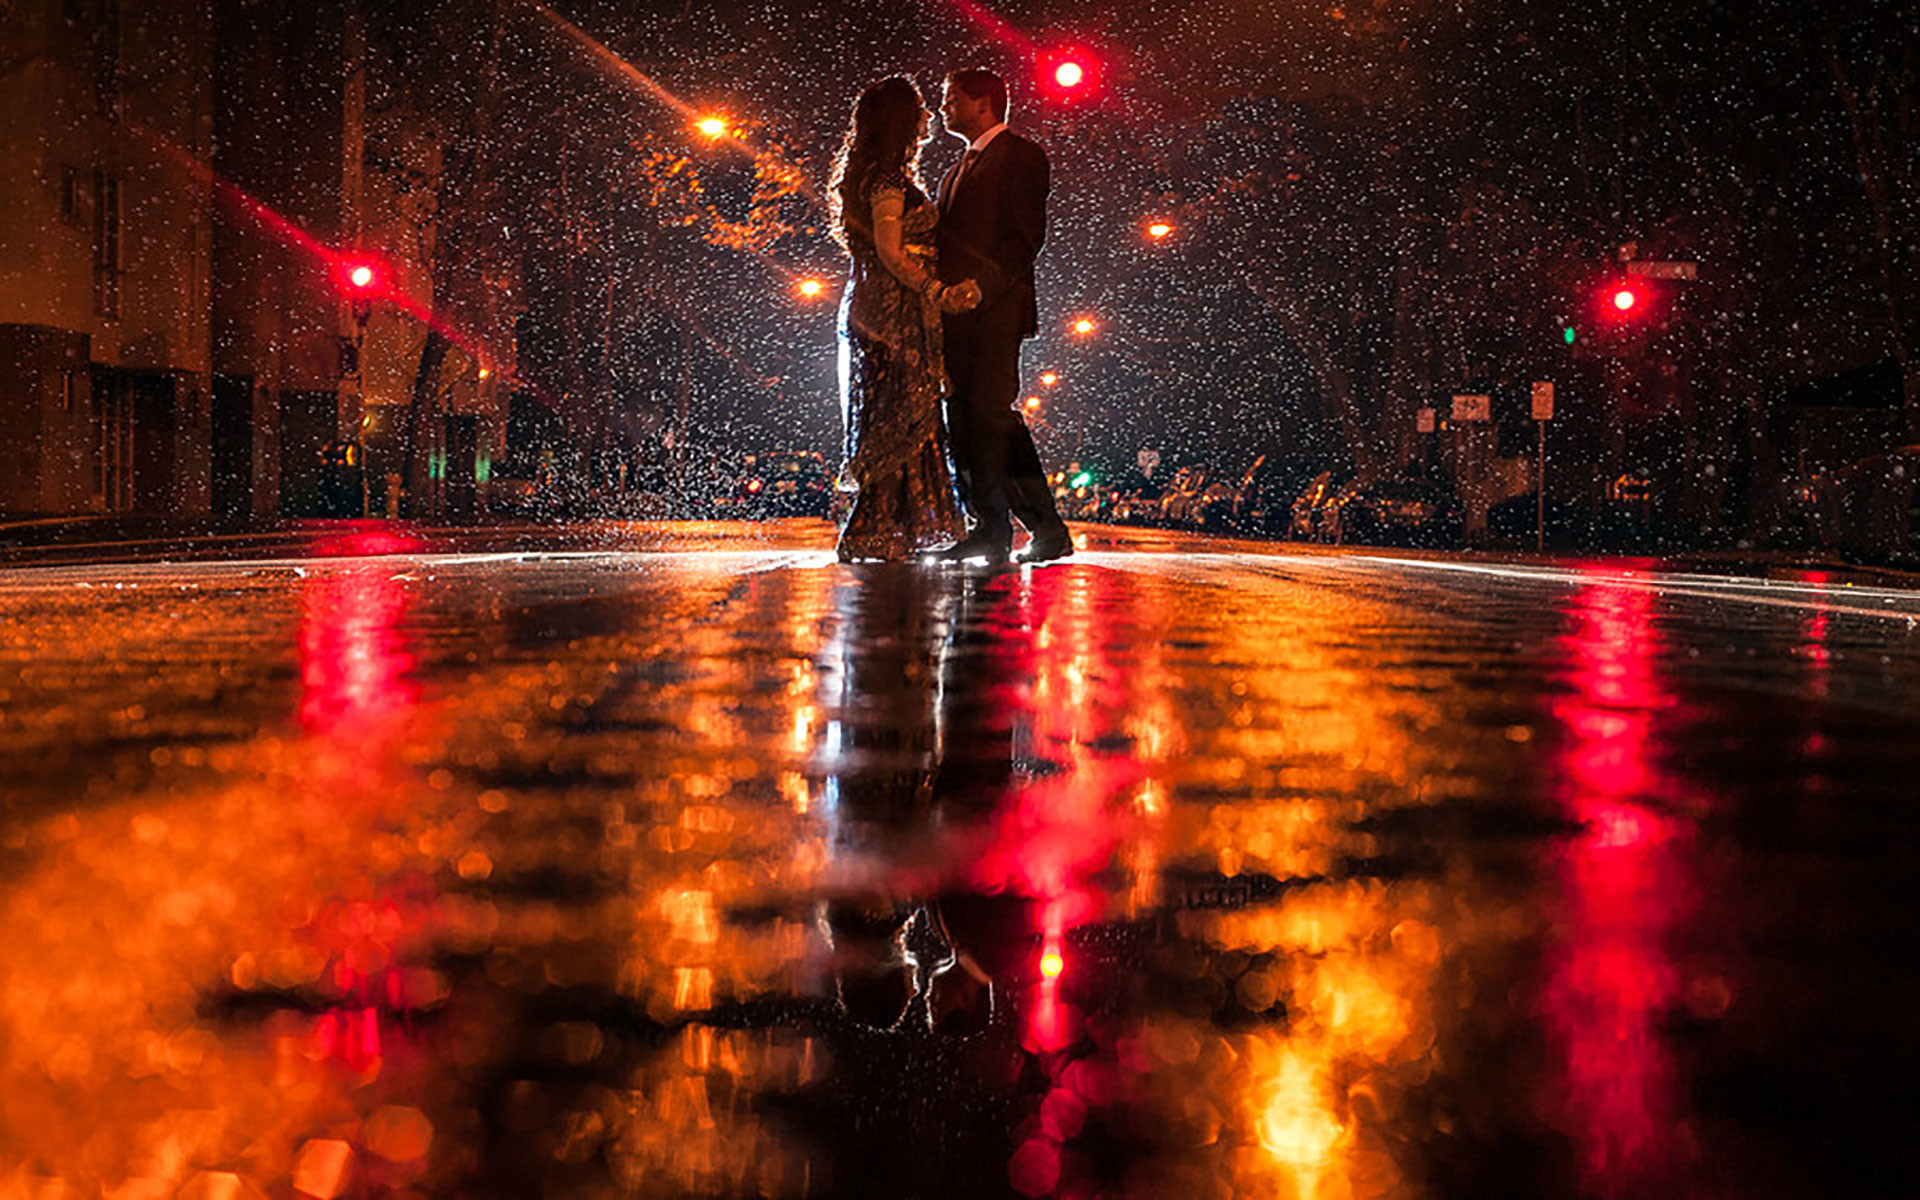 Rainy Day Wallpaper Images (62+ Images